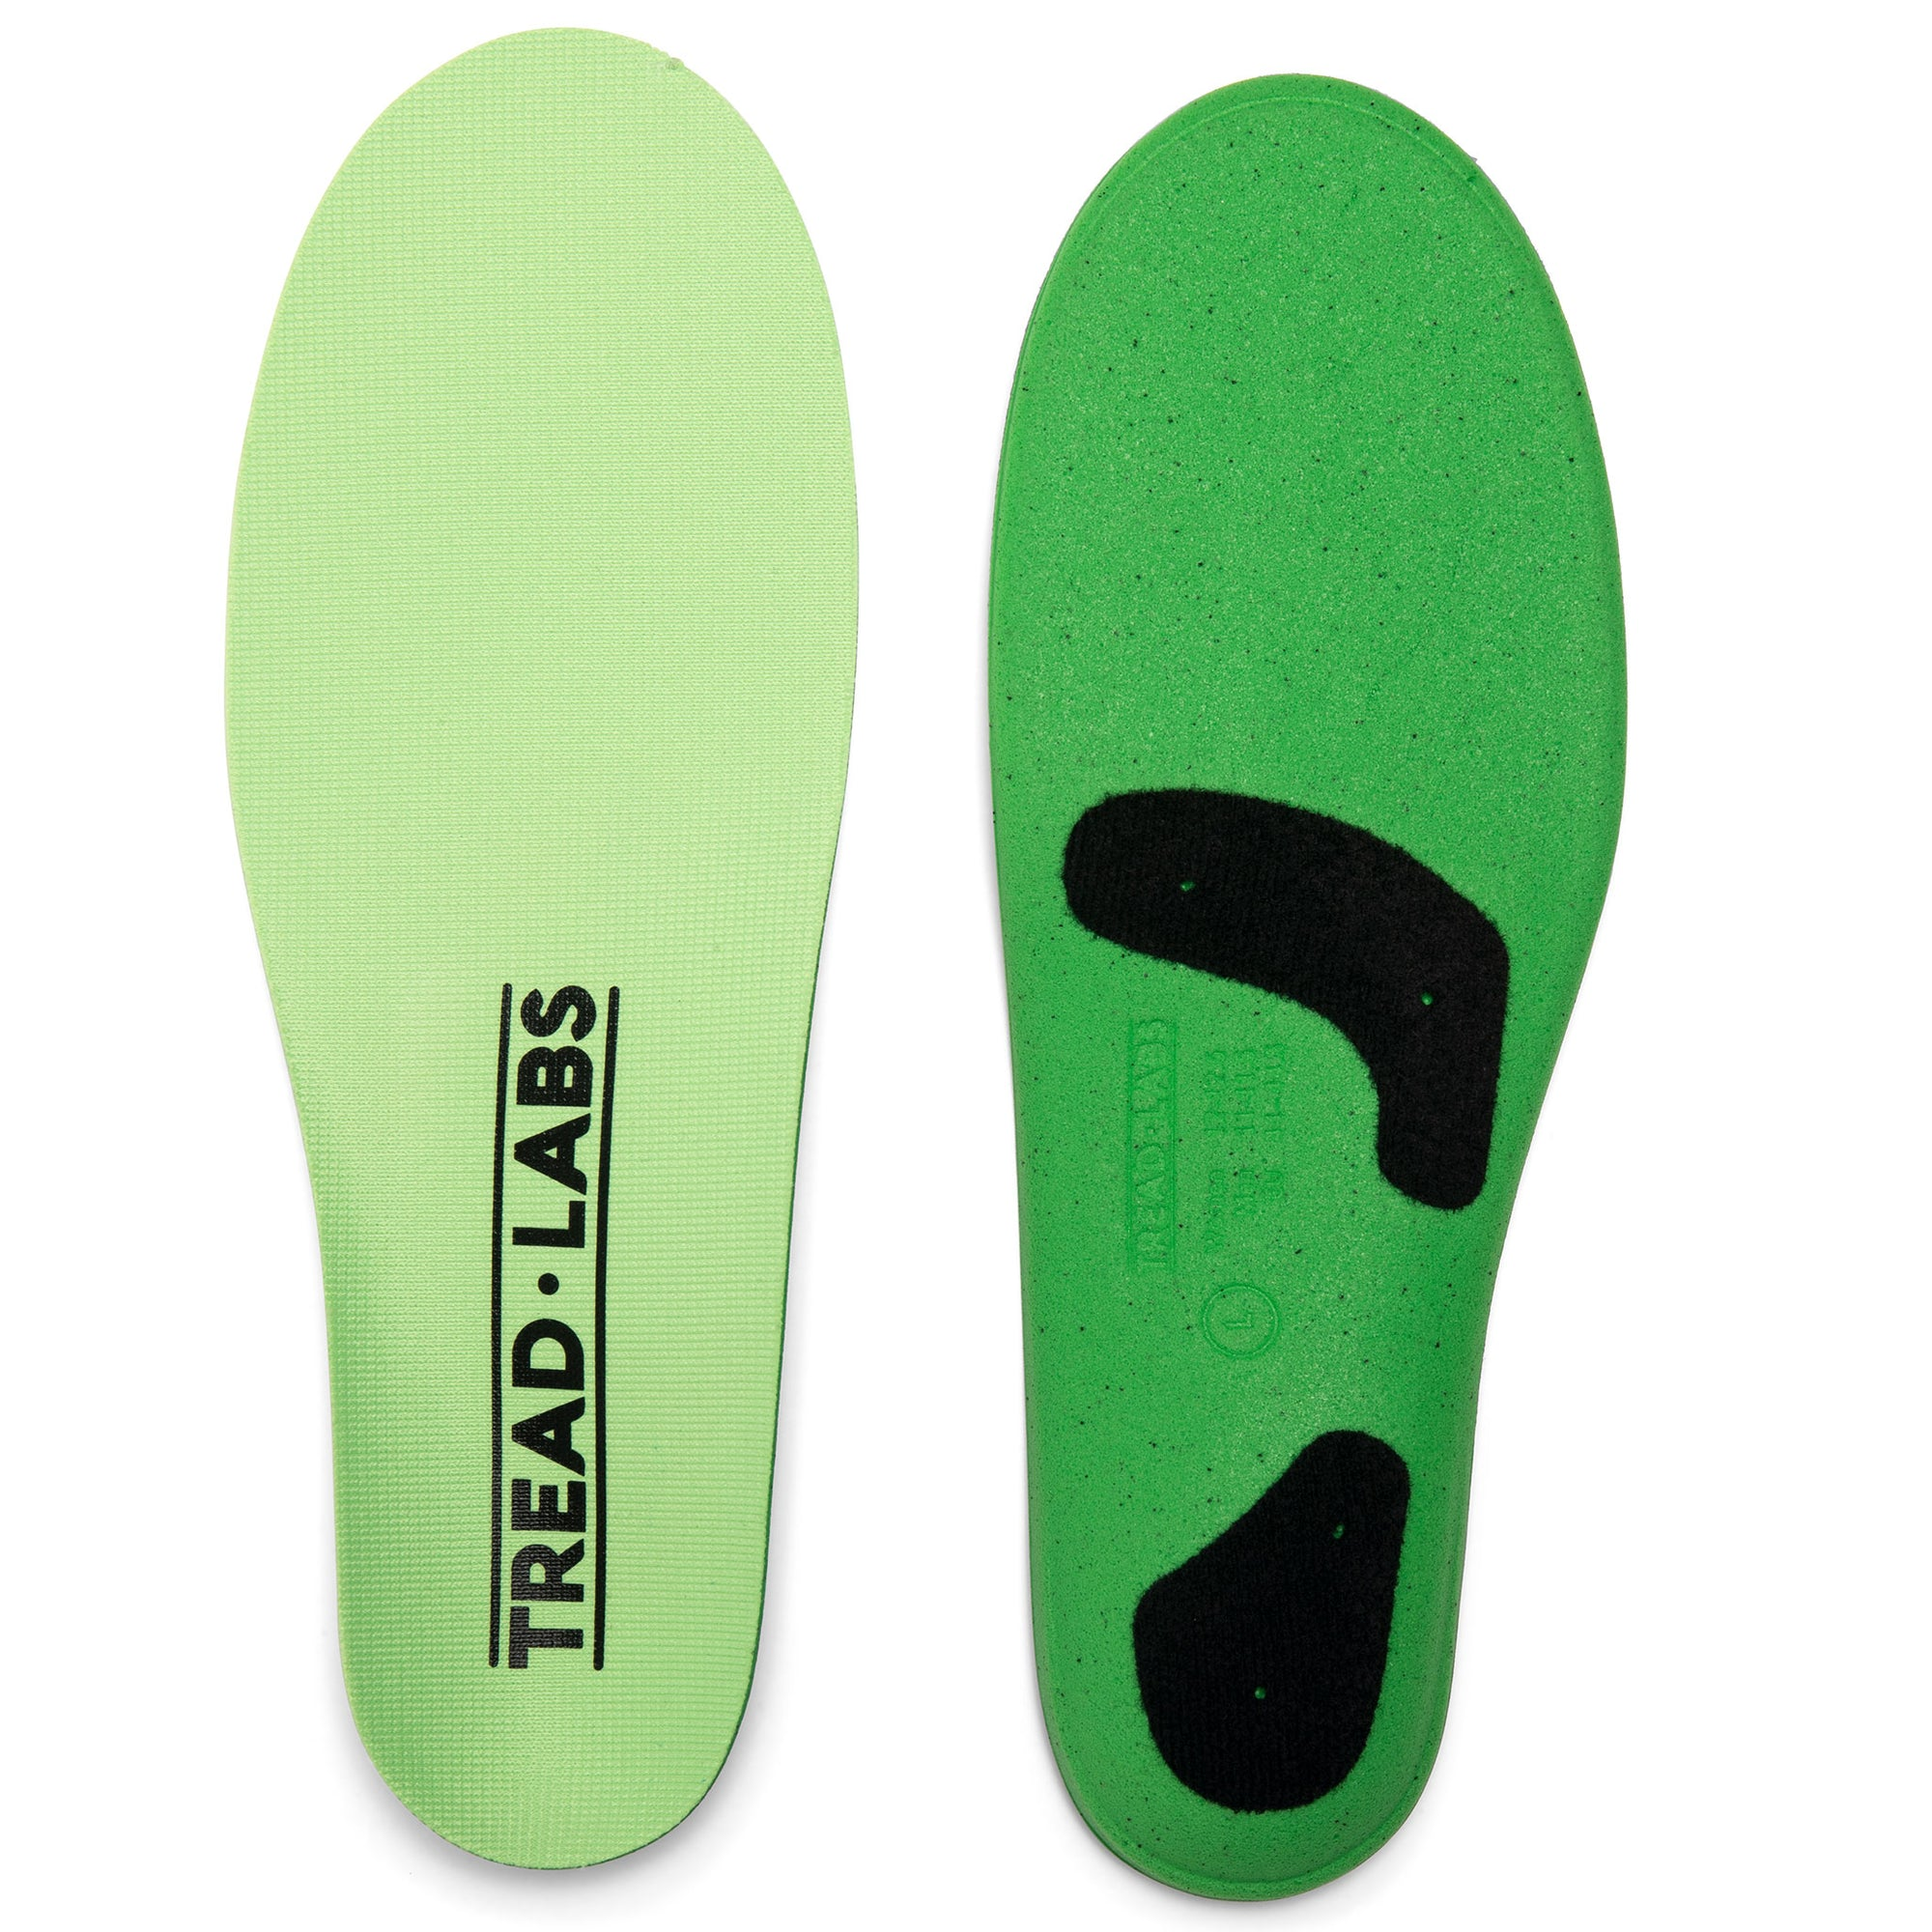 Ramble Thin Comfort Series Insole Replacement Top Covers